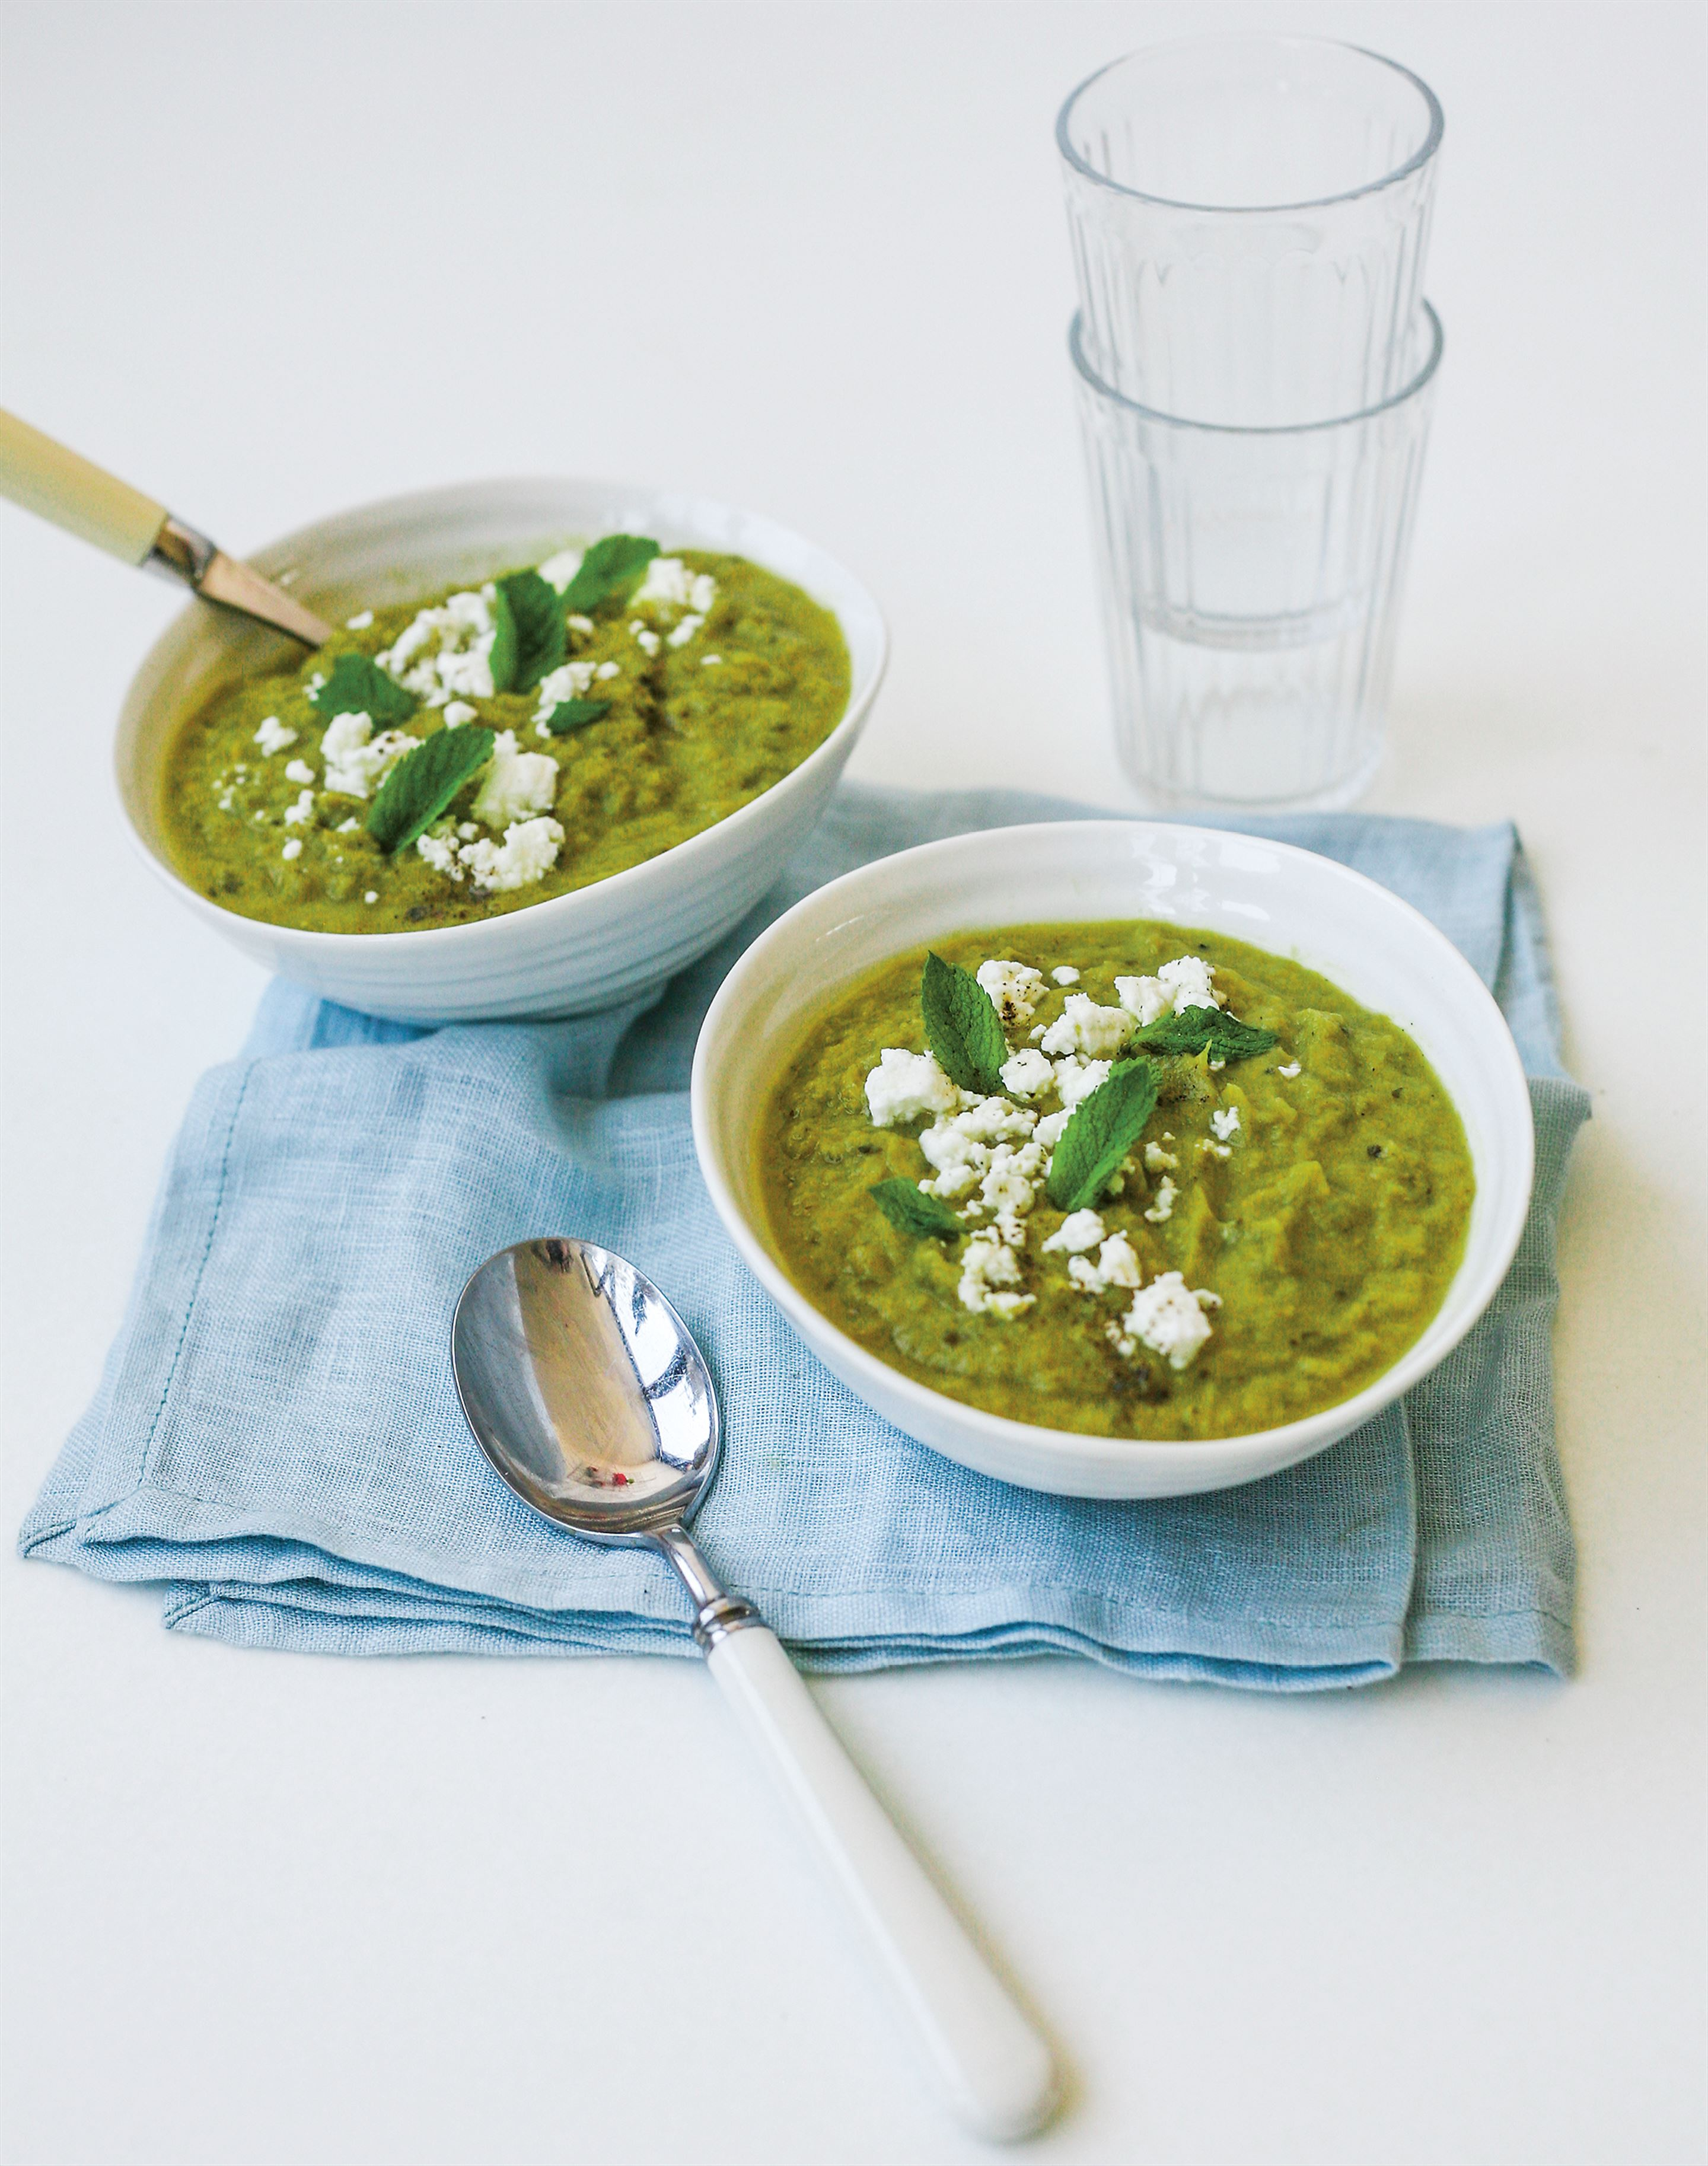 Roast leek, pea & mint soup